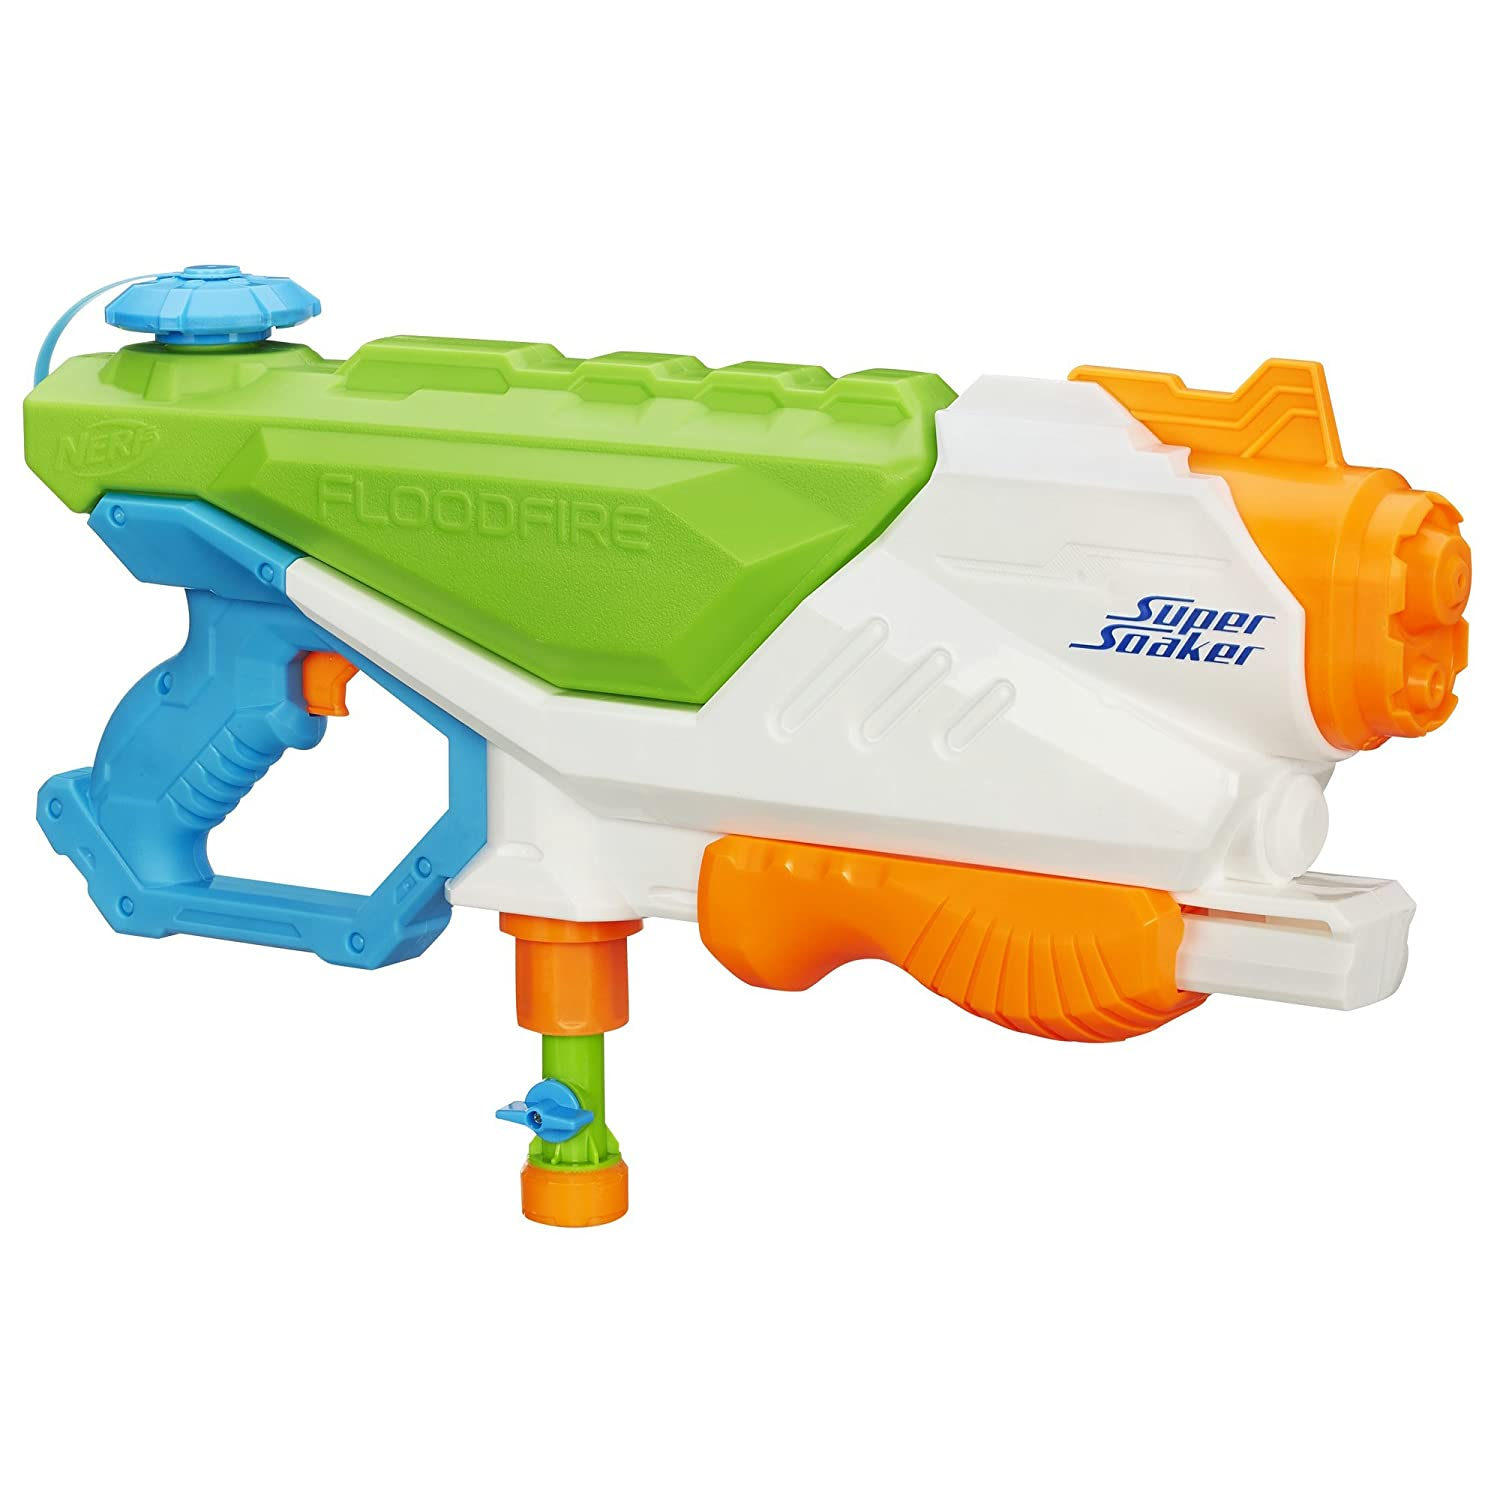 Watch How to Use a Super Soaker video